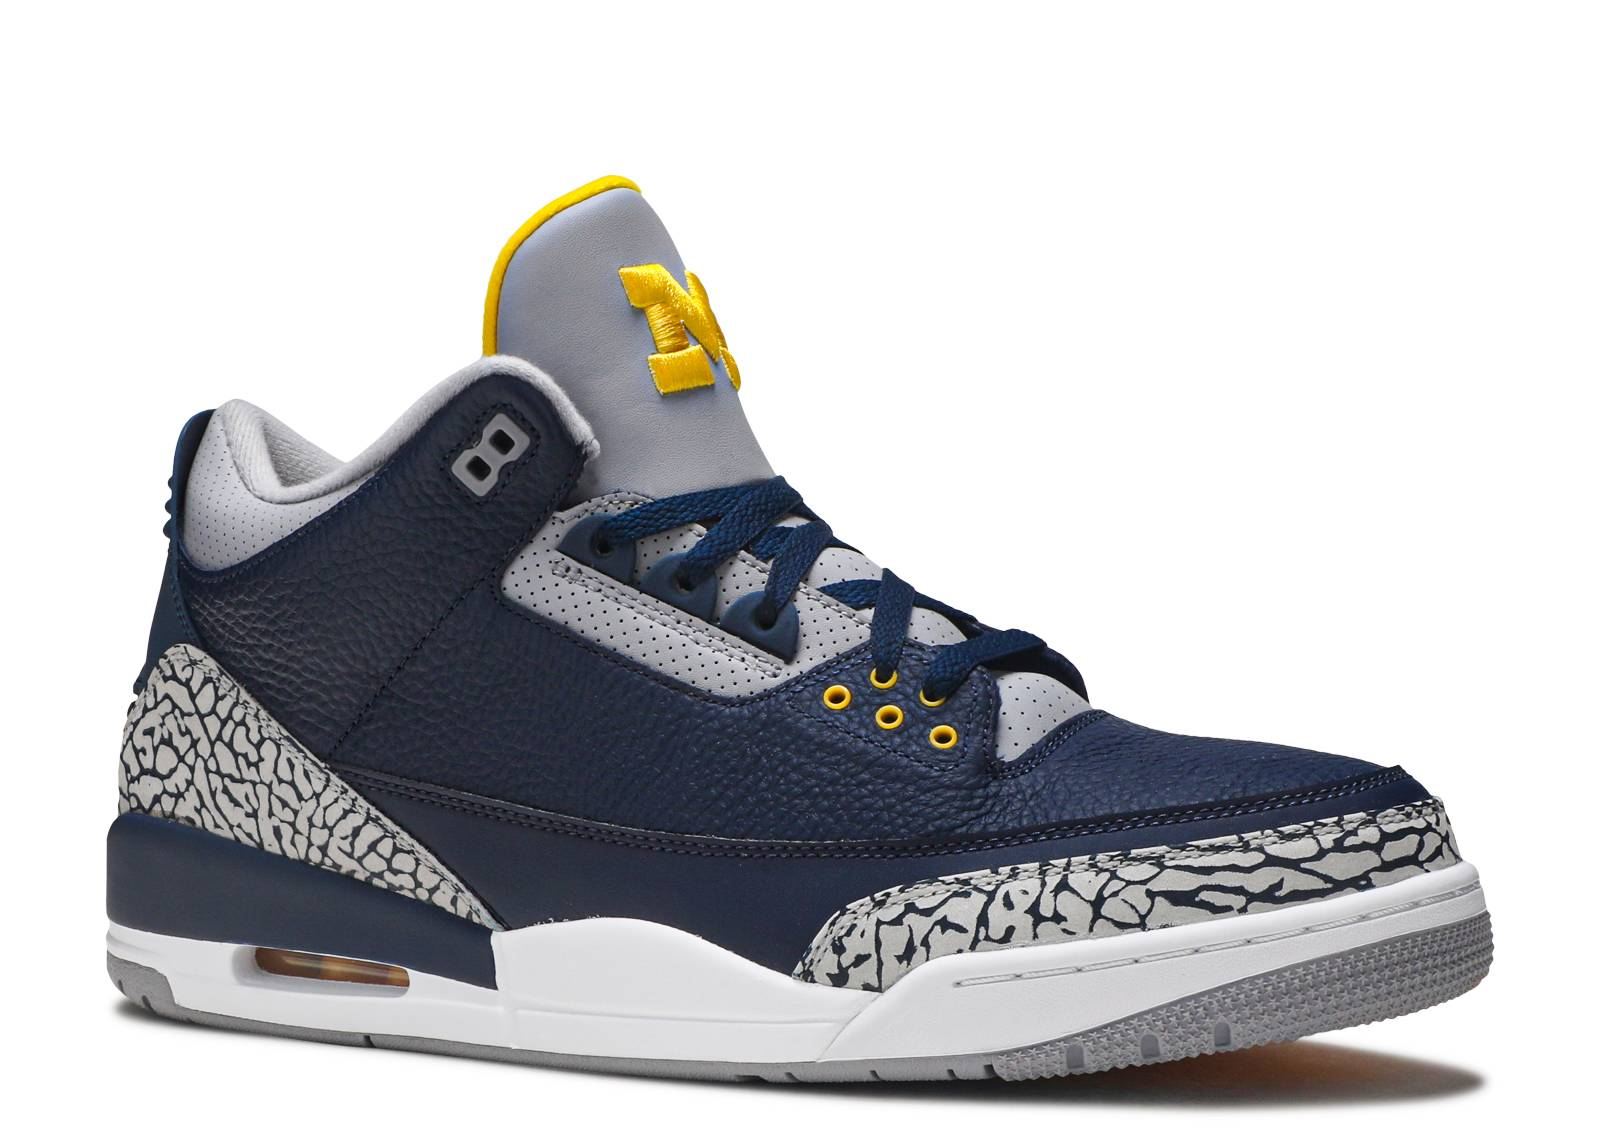 51a8ced39ec57 Air Jordan 3 Retro